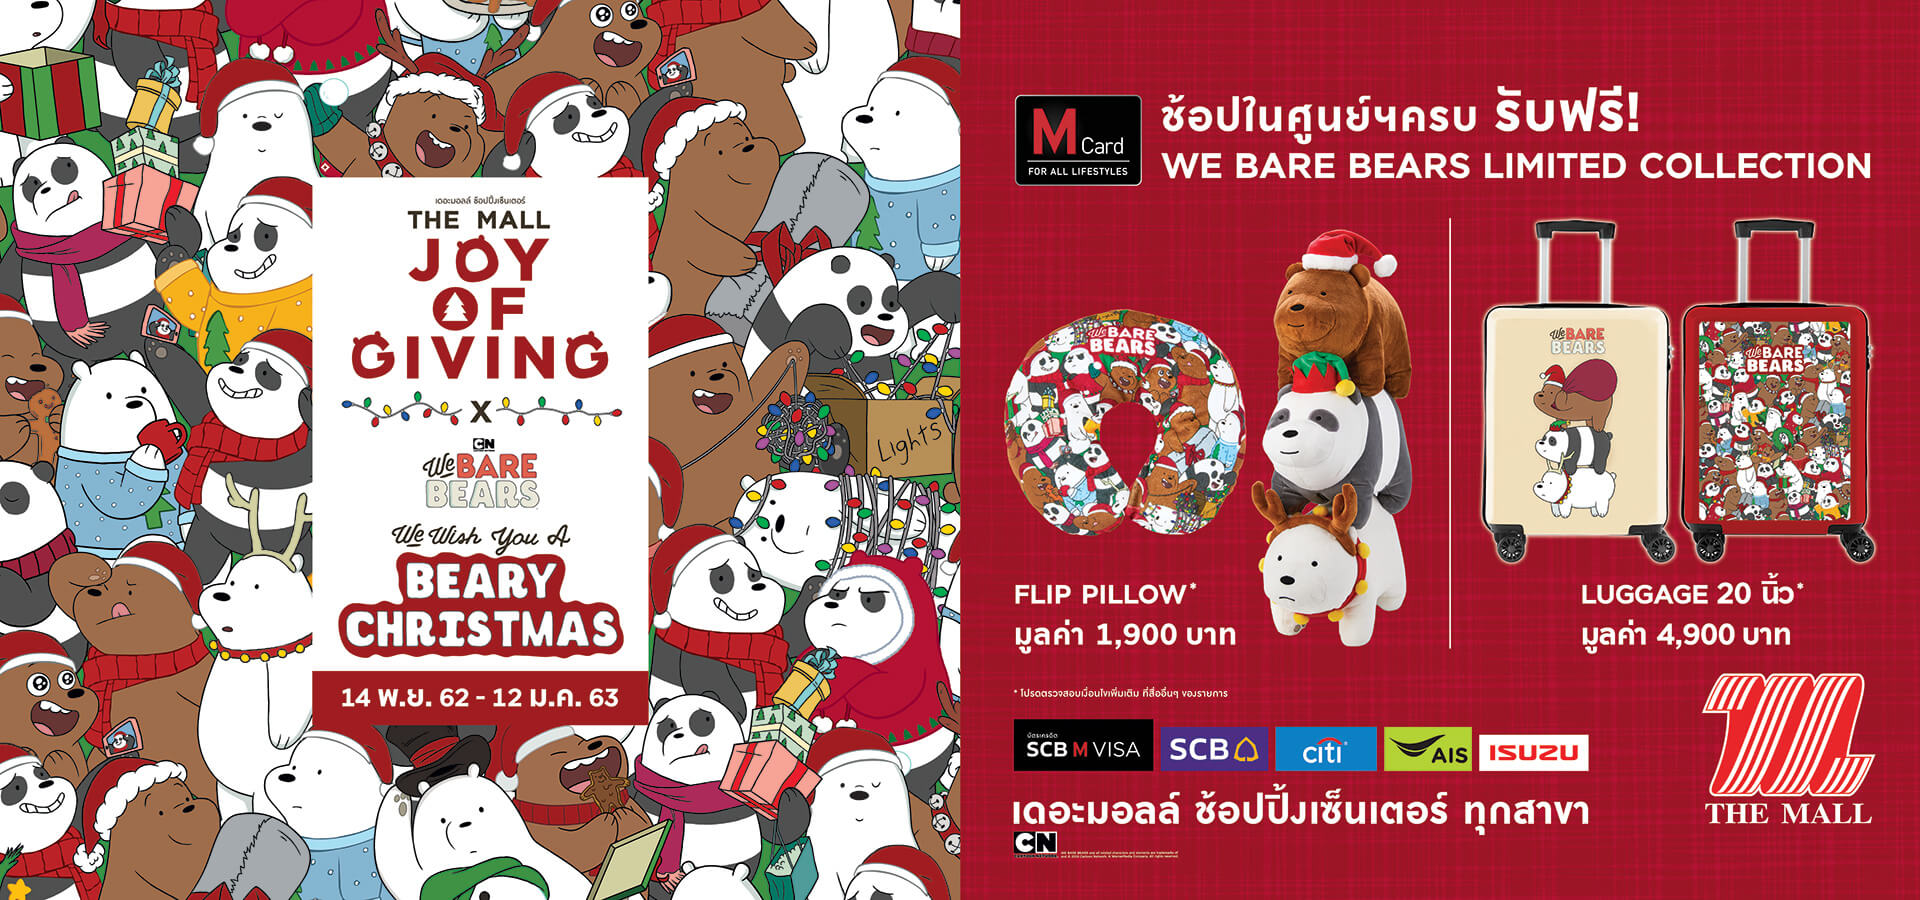 THE MALL JOY OF GIVING x WE BARE BEARS